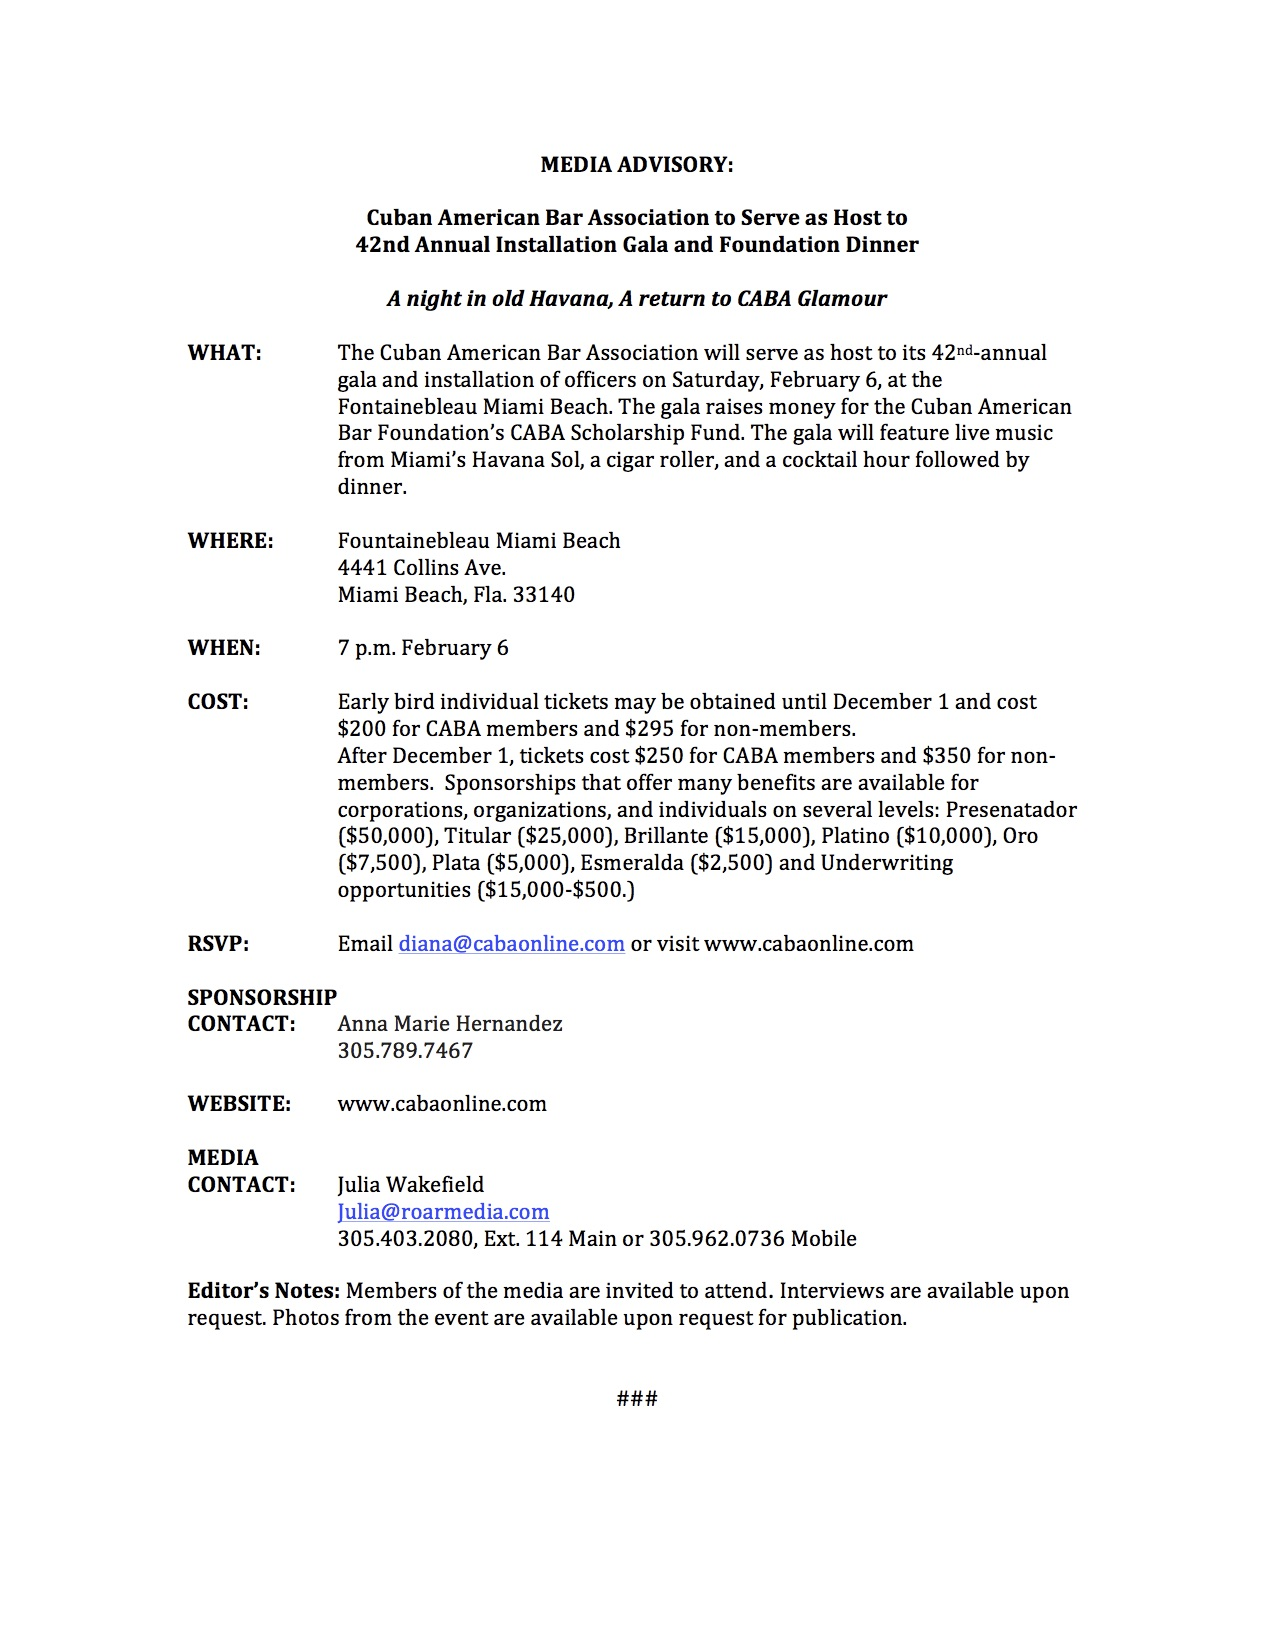 Caba gala media advisory cuban american bar association for Press release brief template